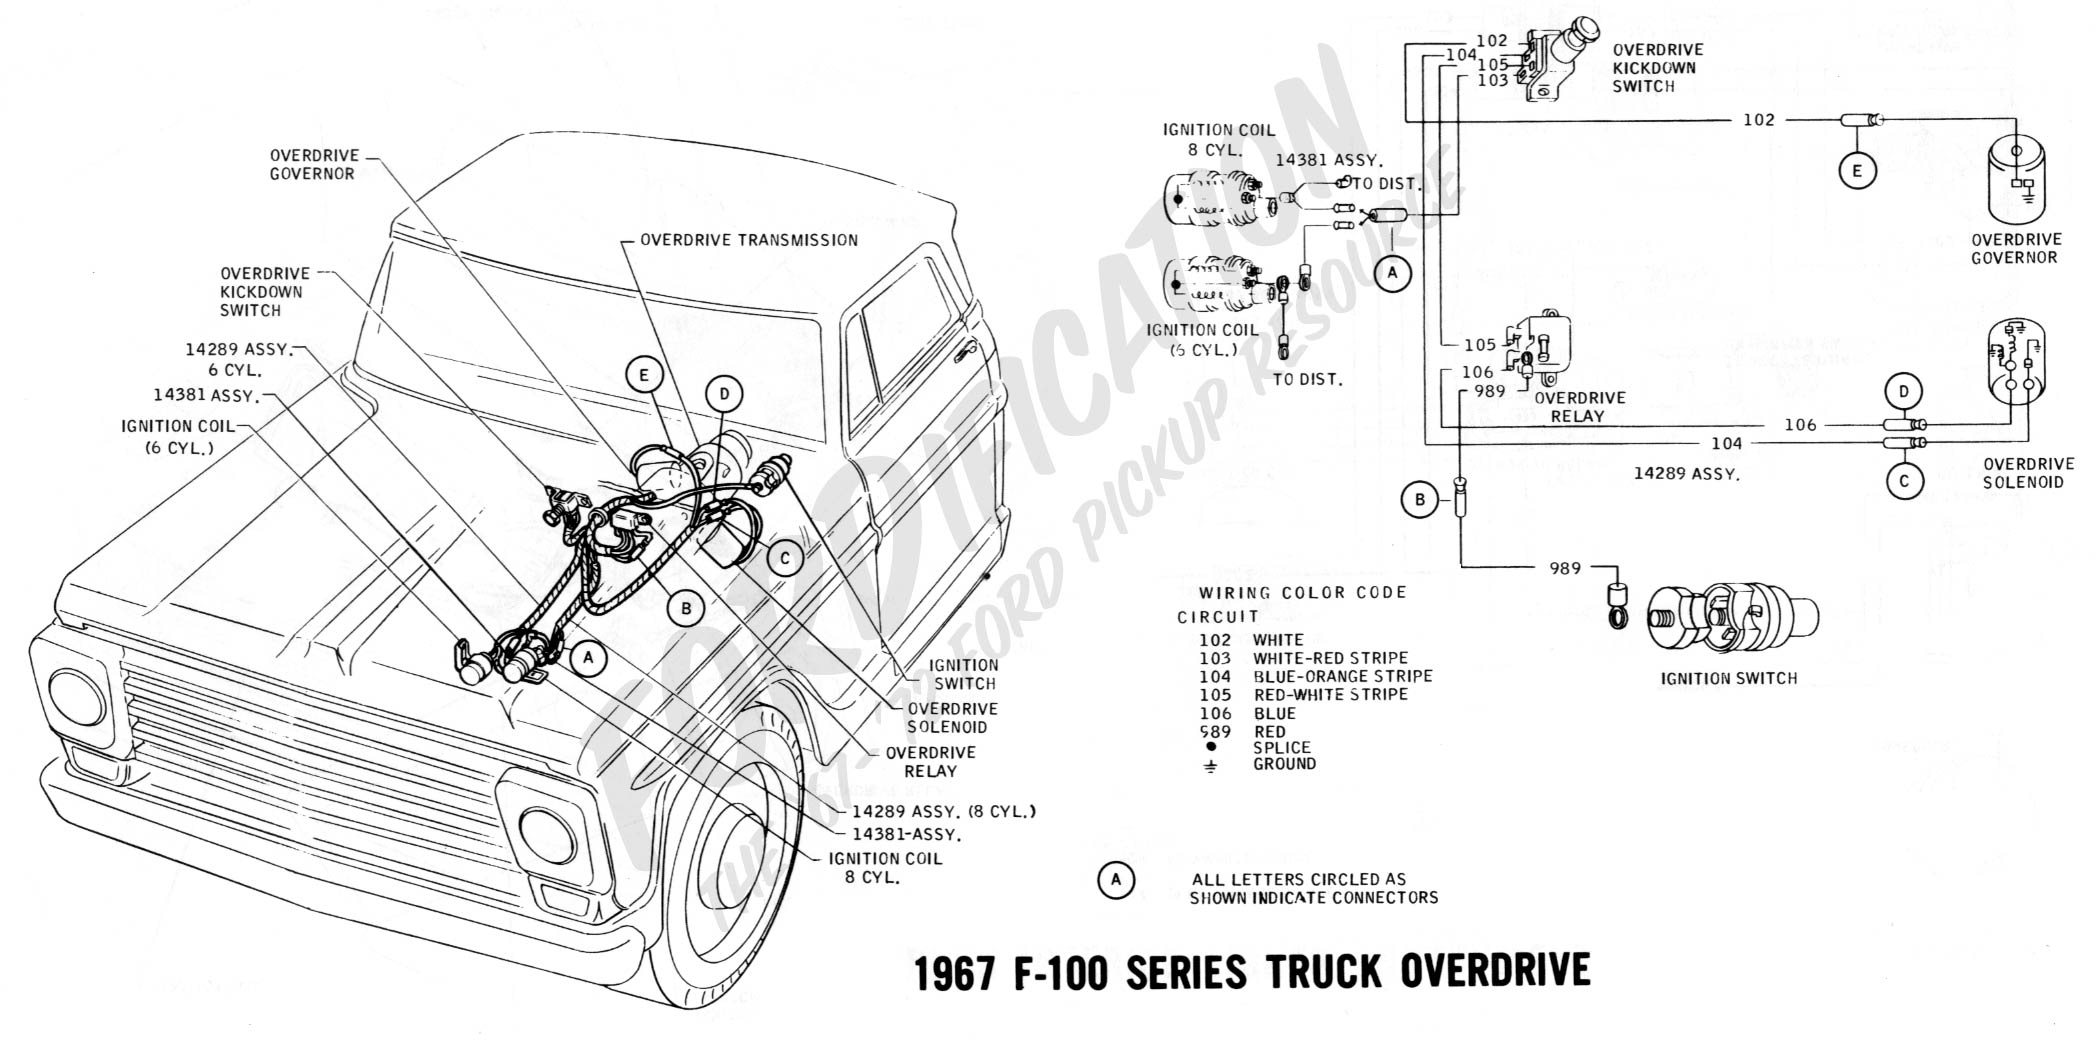 1967 F 100 Wiring Diagrams - Wiring Diagram Save F Steering Column Wiring Diagram on